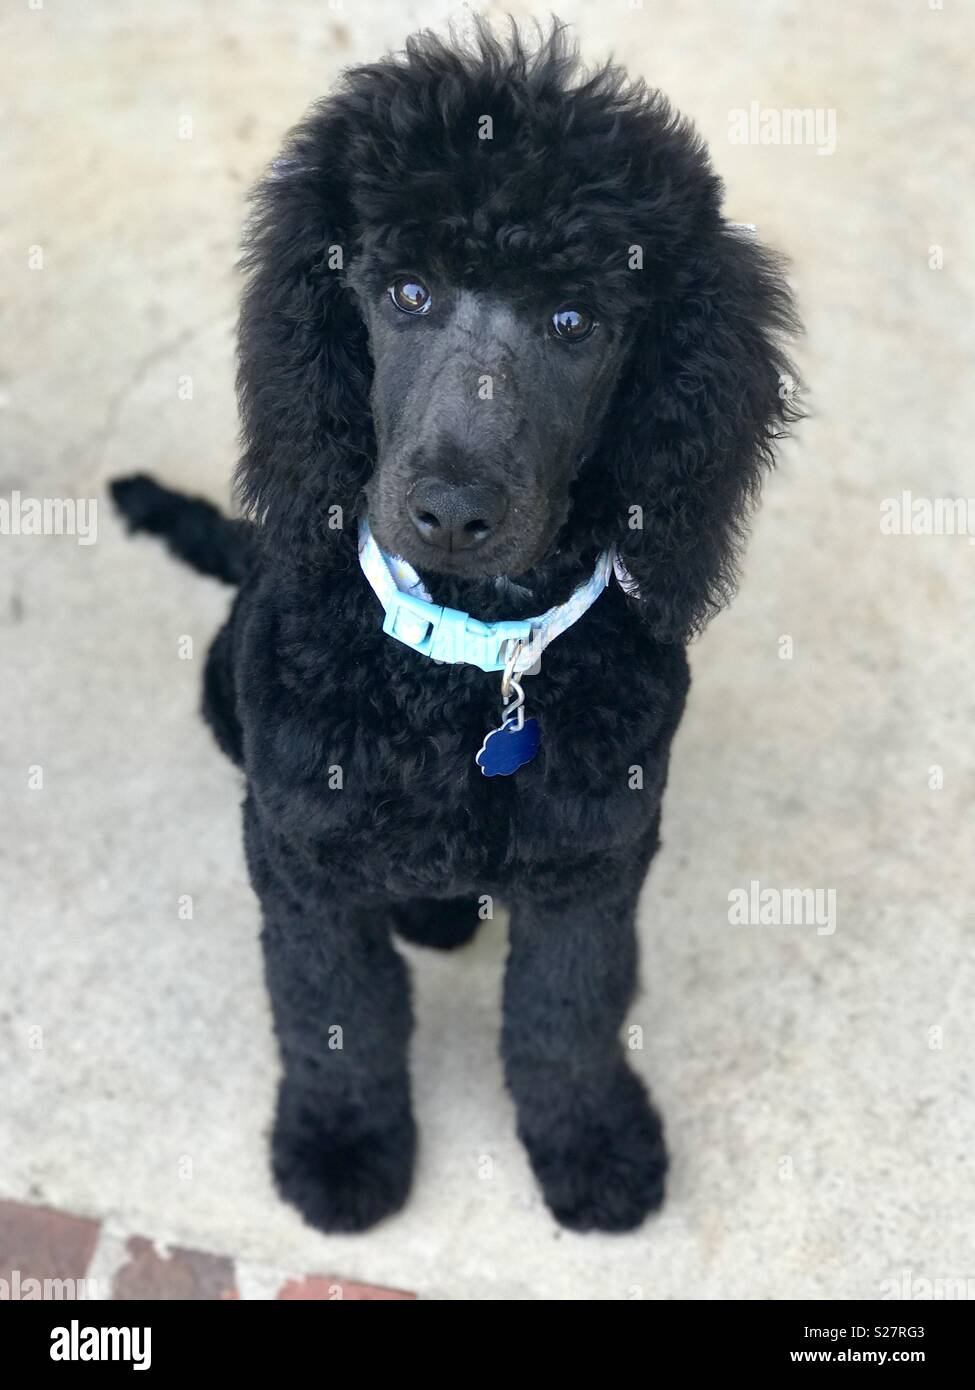 Blue Poodle Stock Photos & Blue Poodle Stock Images - Alamy